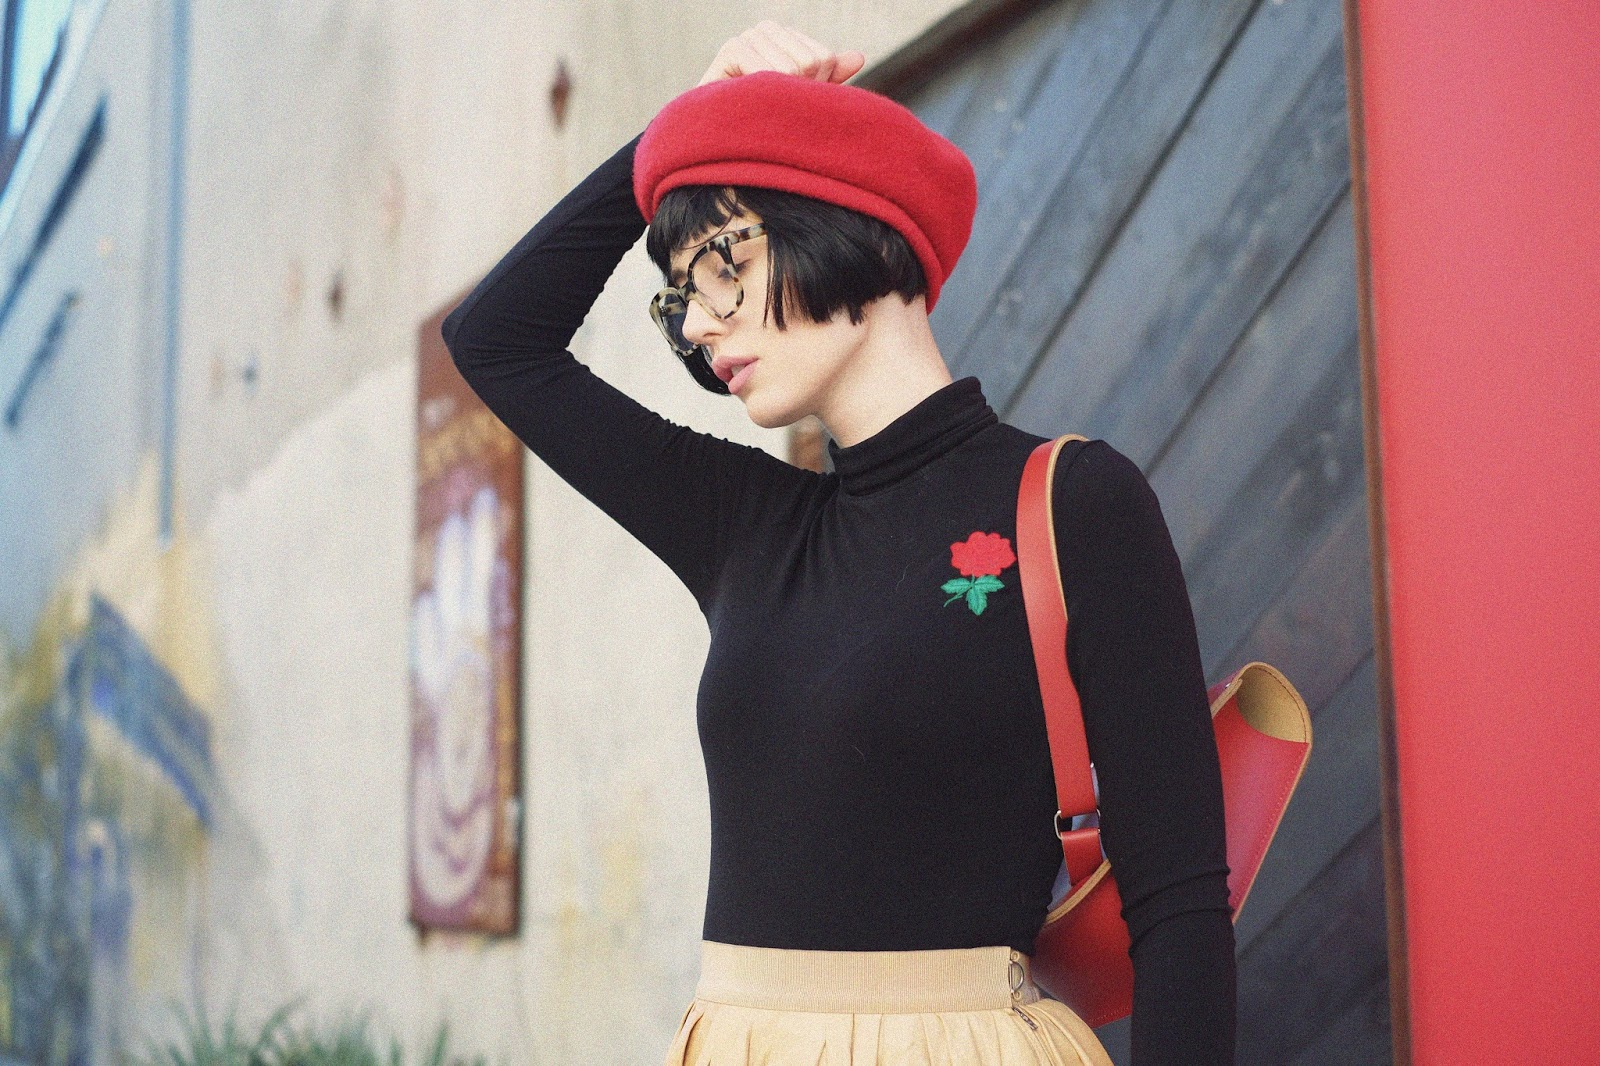 Short hair / red beret /